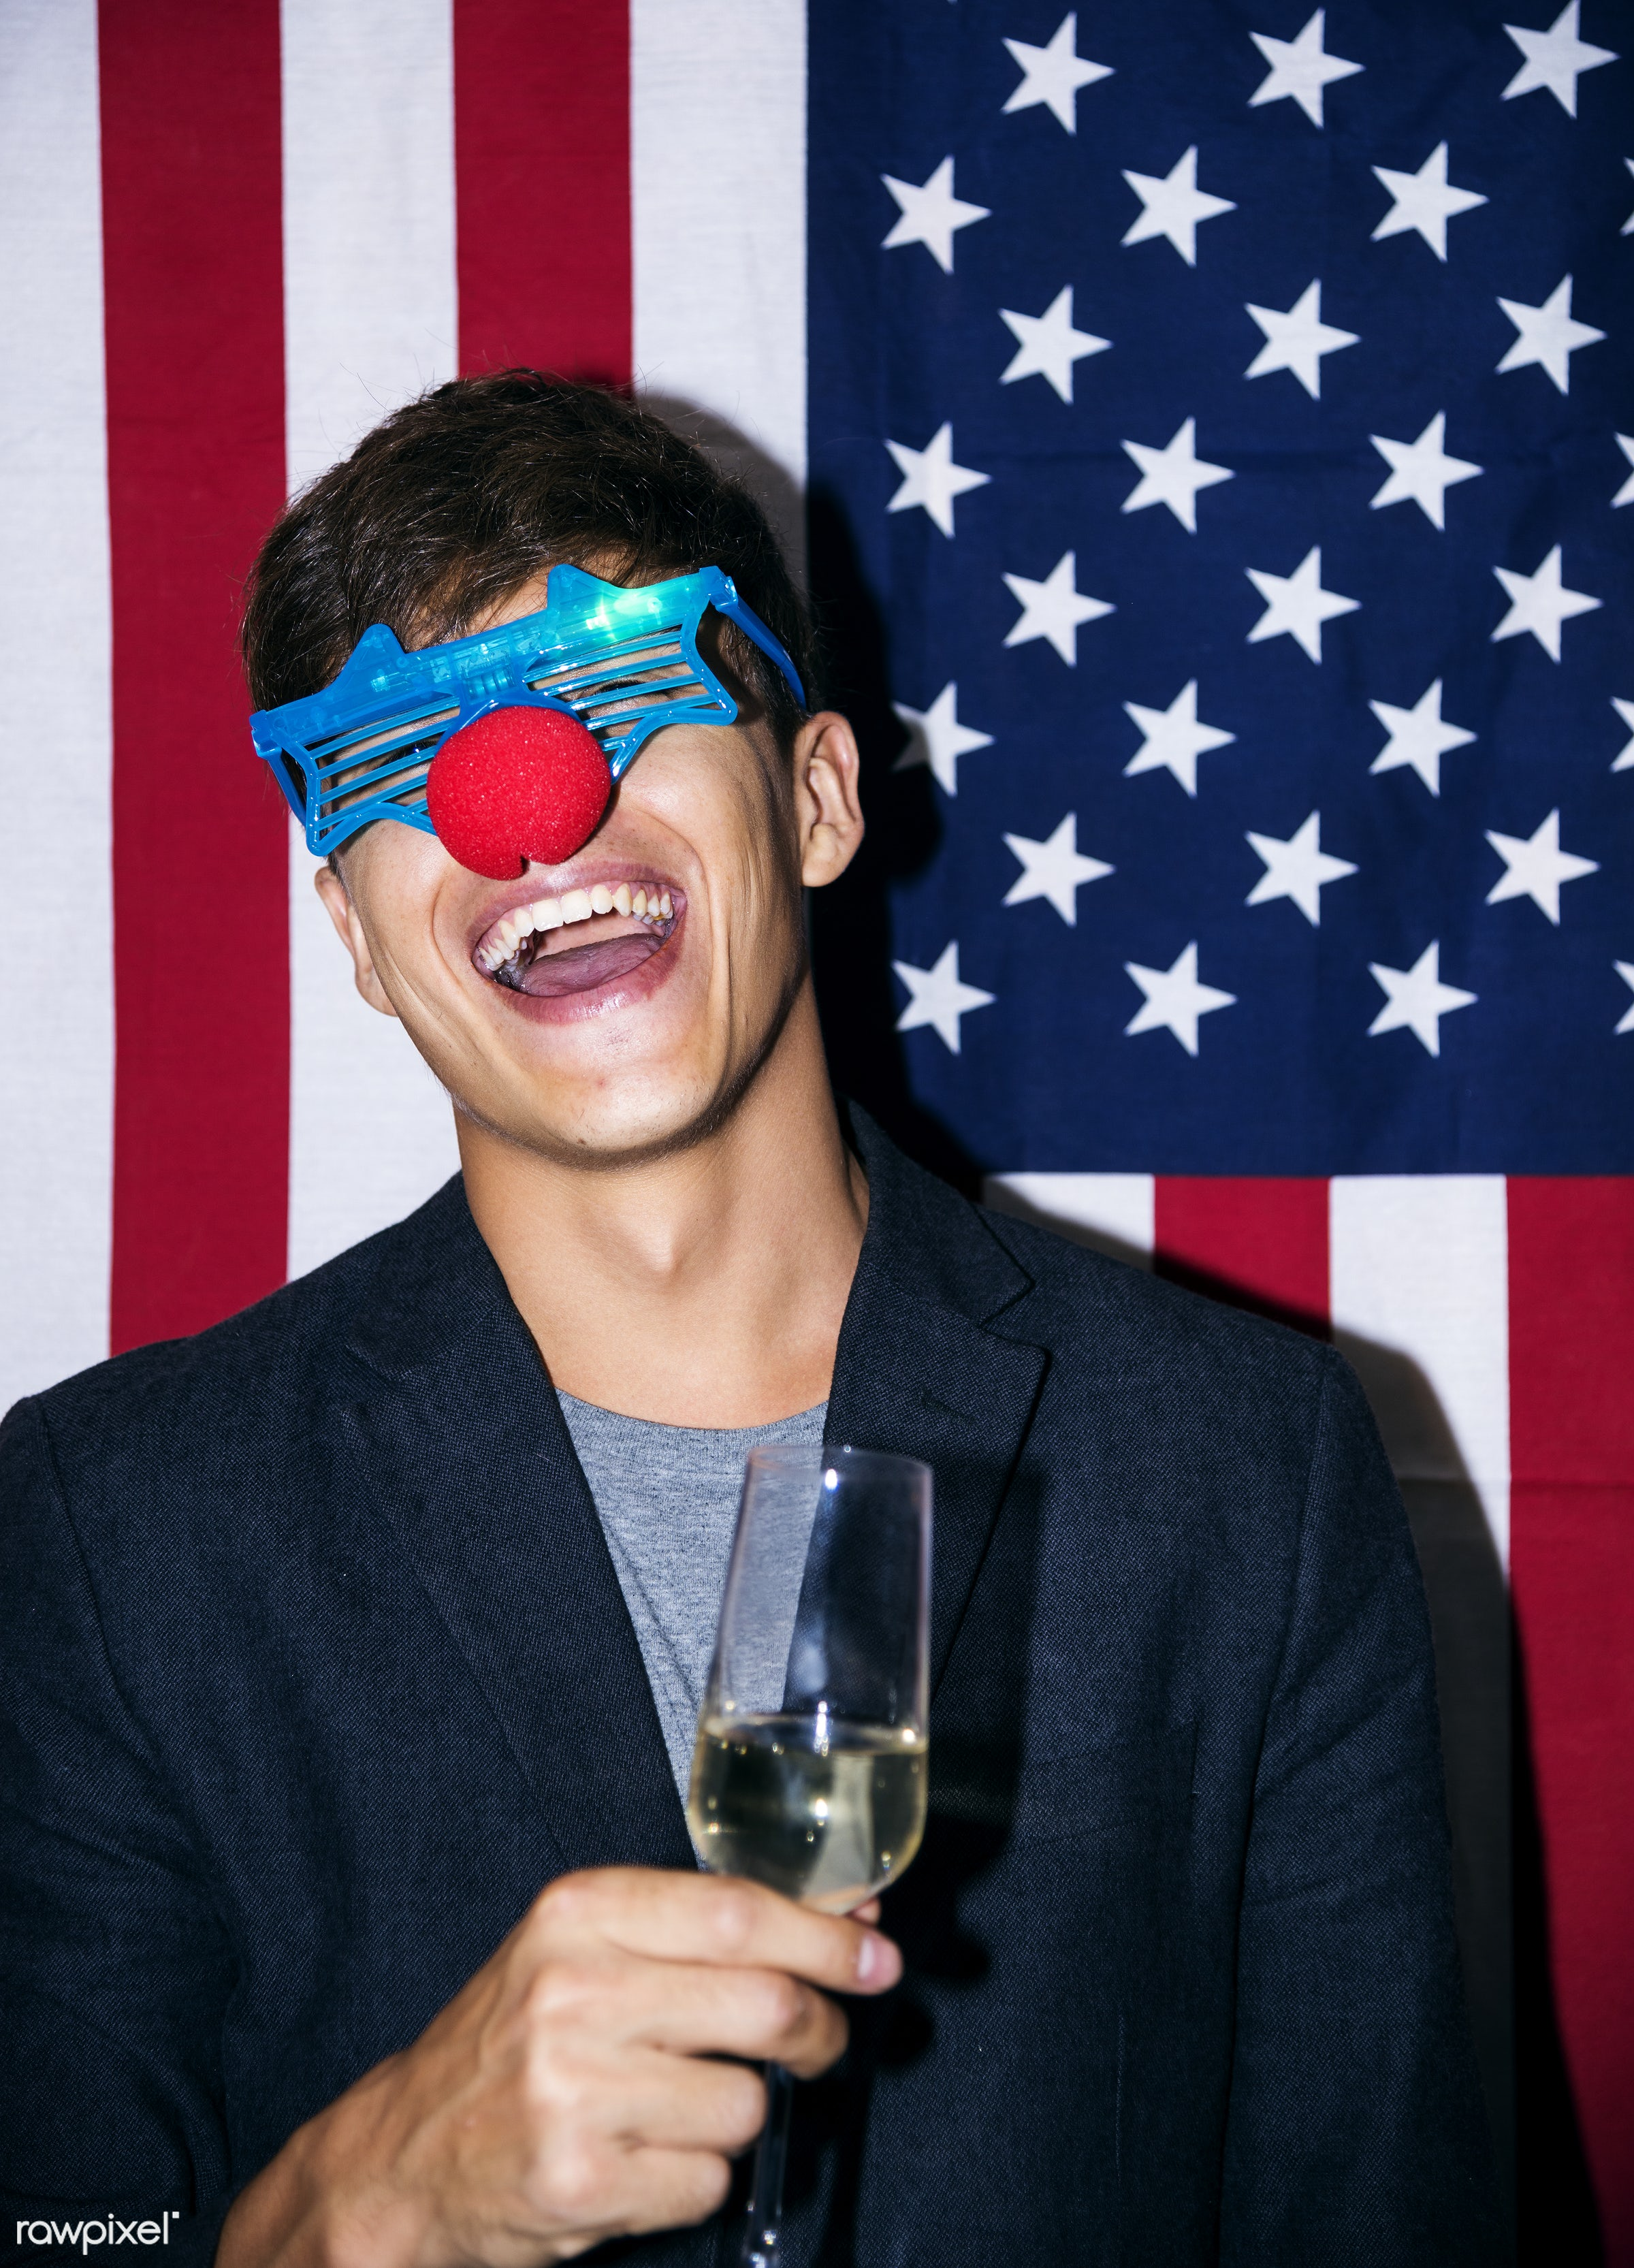 People having fun in a party - 2018, alcohol, alone, american flag, beverage, birthday, birthday party, caucasian, celebrate...